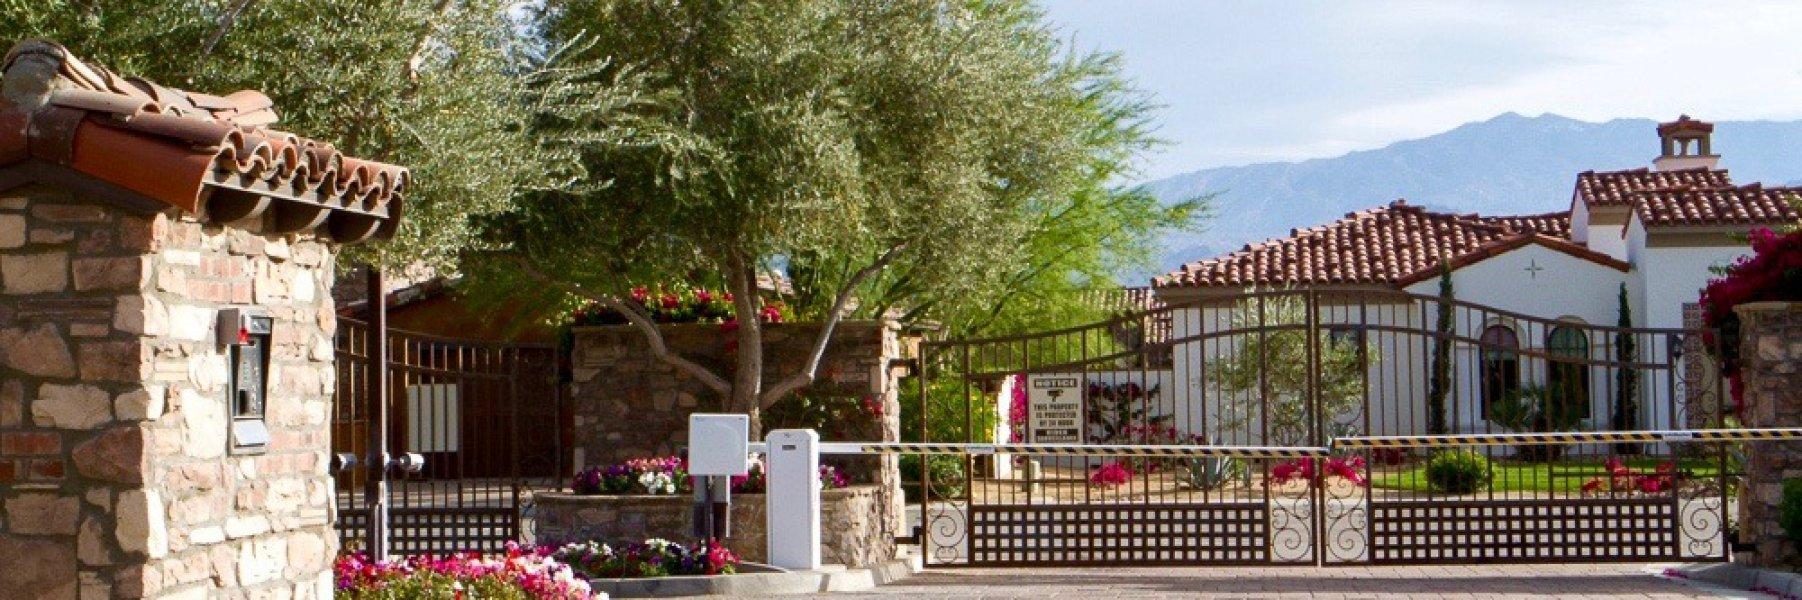 Escala is a community of homes in Rancho Mirage California